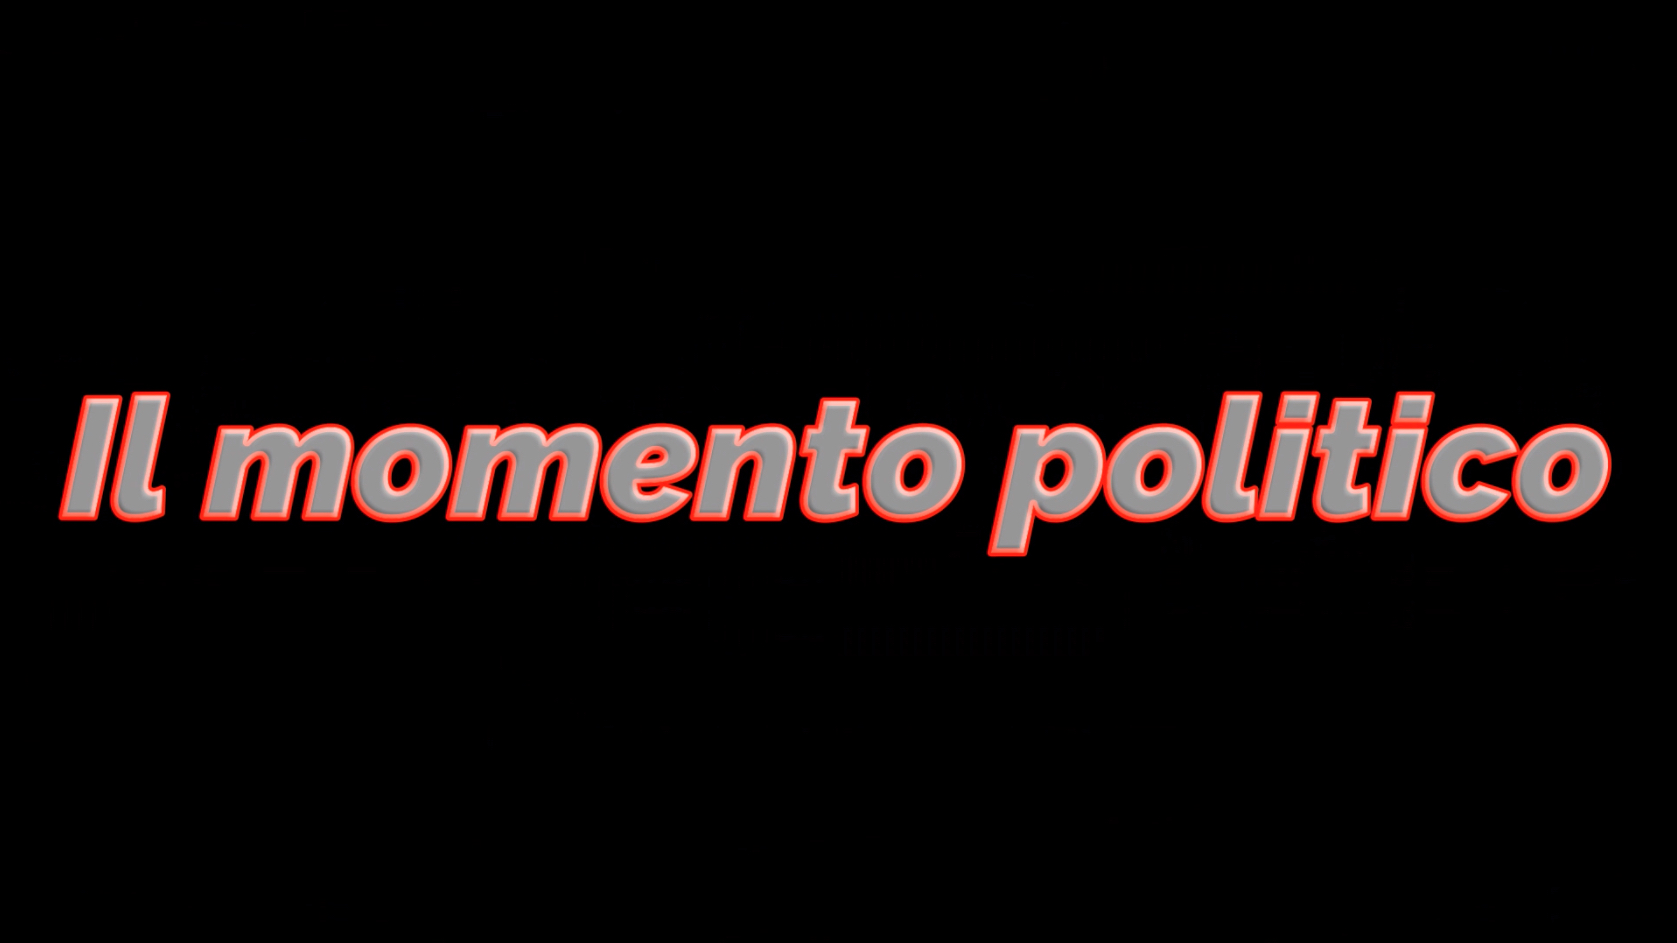 'Il momento politico' category image